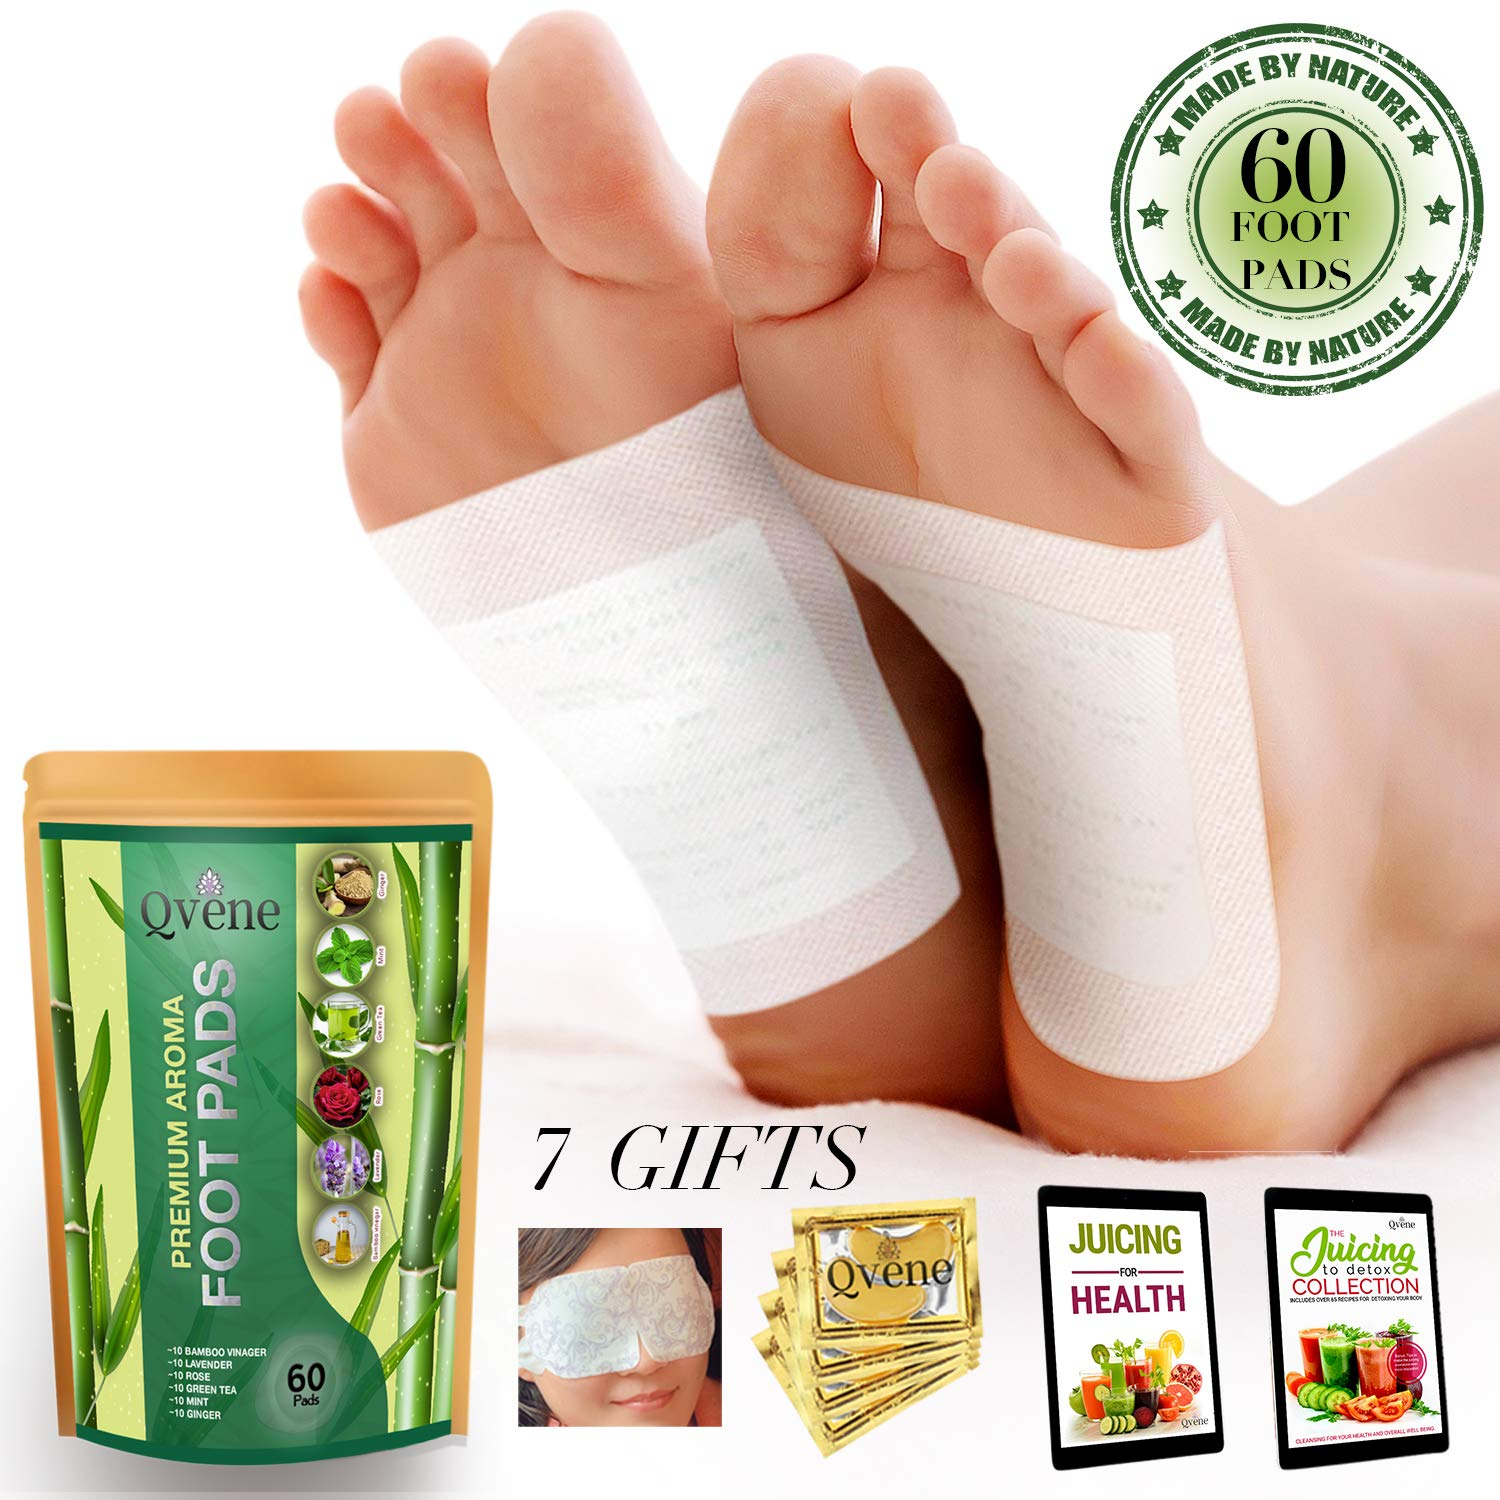 Qvene (60pcs) Premium Aromatherapy Body Cleanse Foot Pads - Natural Sleeping Aid, Stress Relief, Pain Relief, Organic Pads for Foot Care - 60 Pads, plus Bonus Products natural sleep aids NATURAL SLEEP AIDS – Choosing the Right Product for a Restful Sleep 71IKmKJsxiL